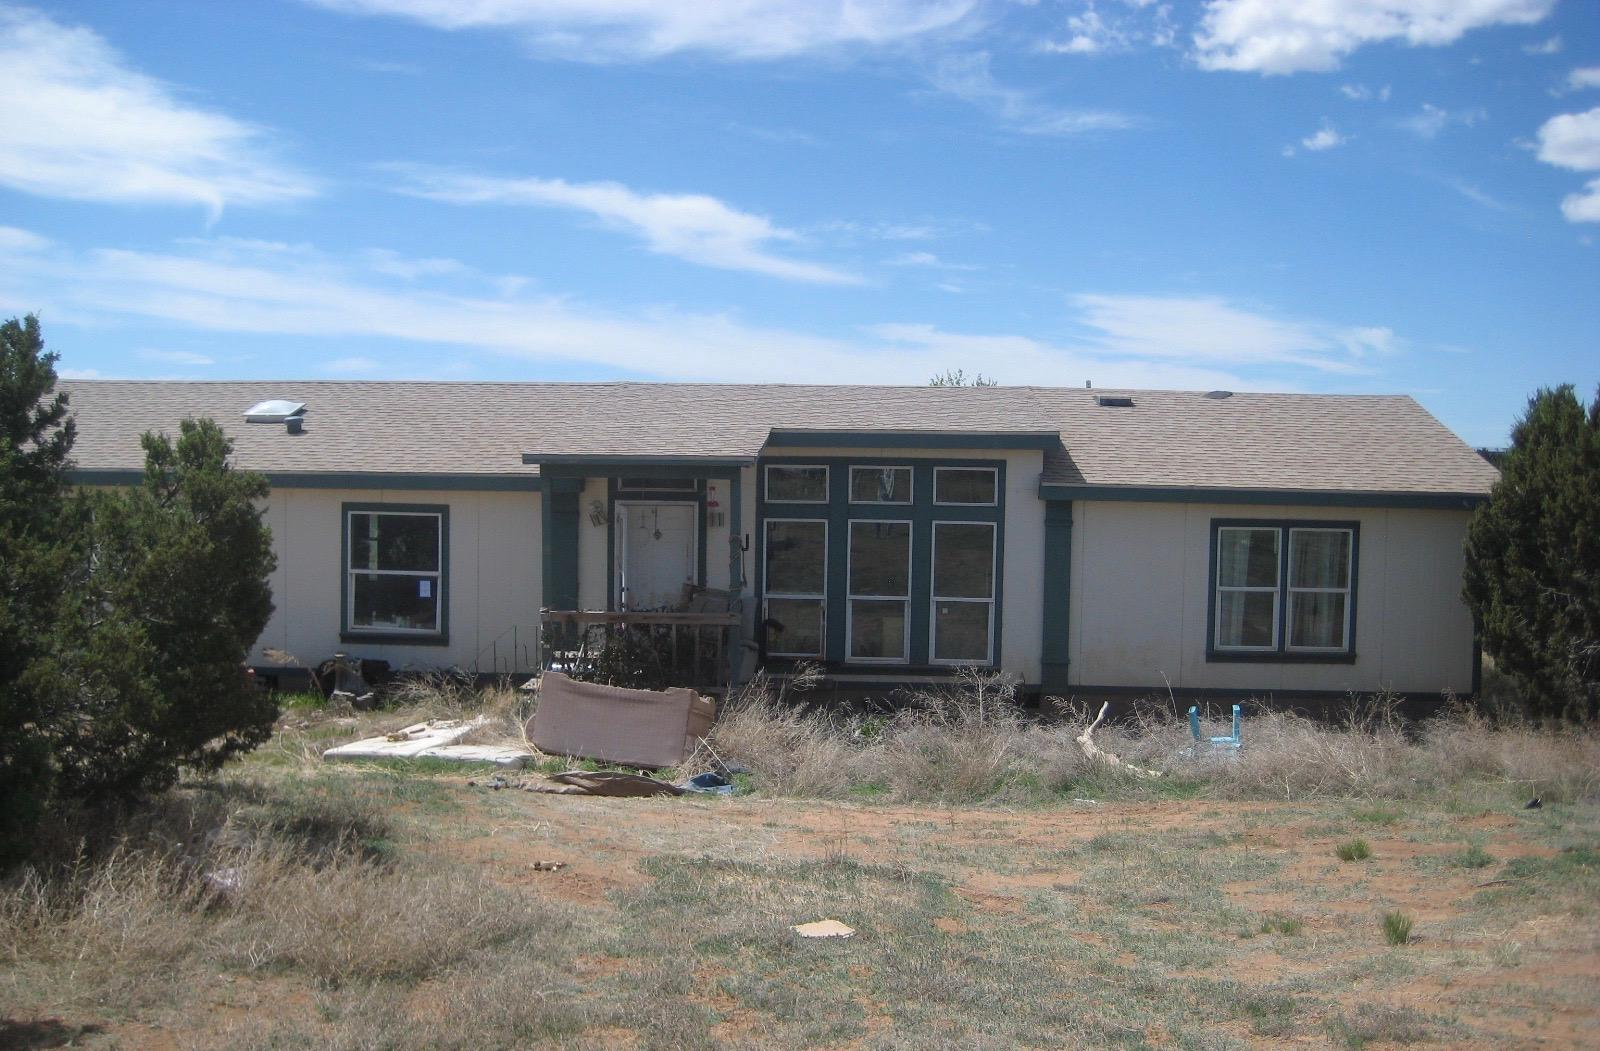 23 BRANDY Court Property Photo - Moriarty, NM real estate listing